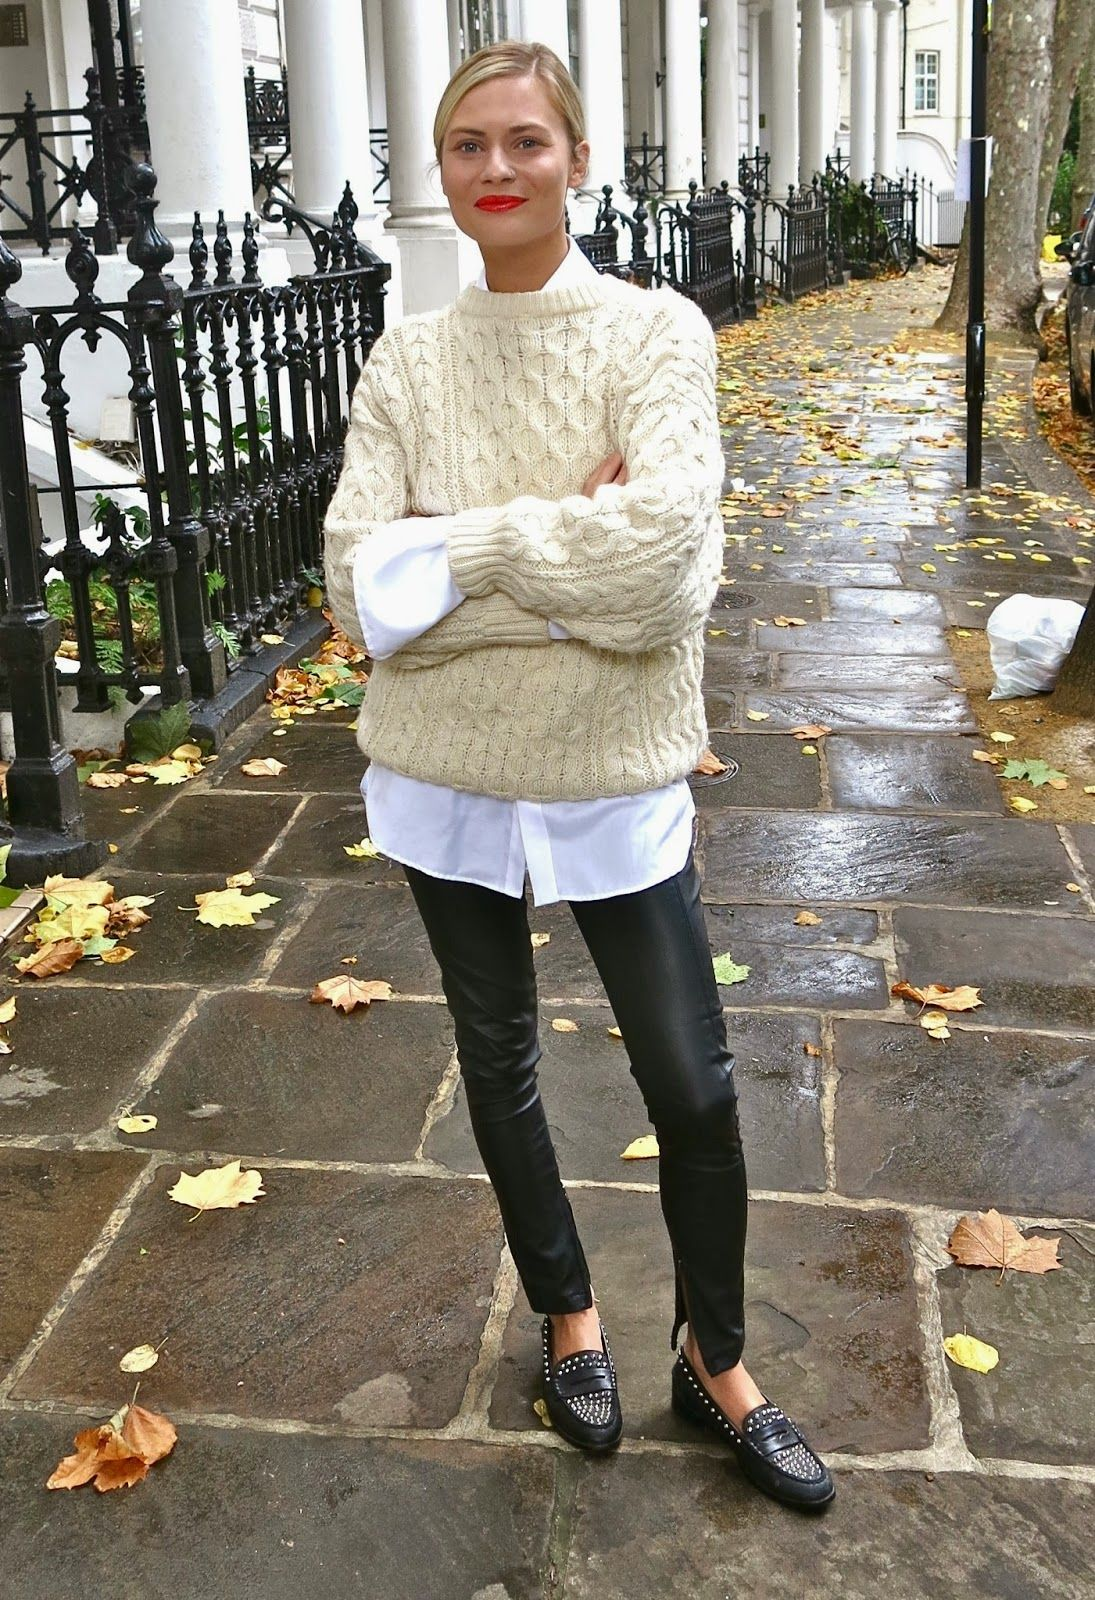 An Incredibly Stylish Way to Wear a Cable Knit Sweater — Pandora Sykes Style